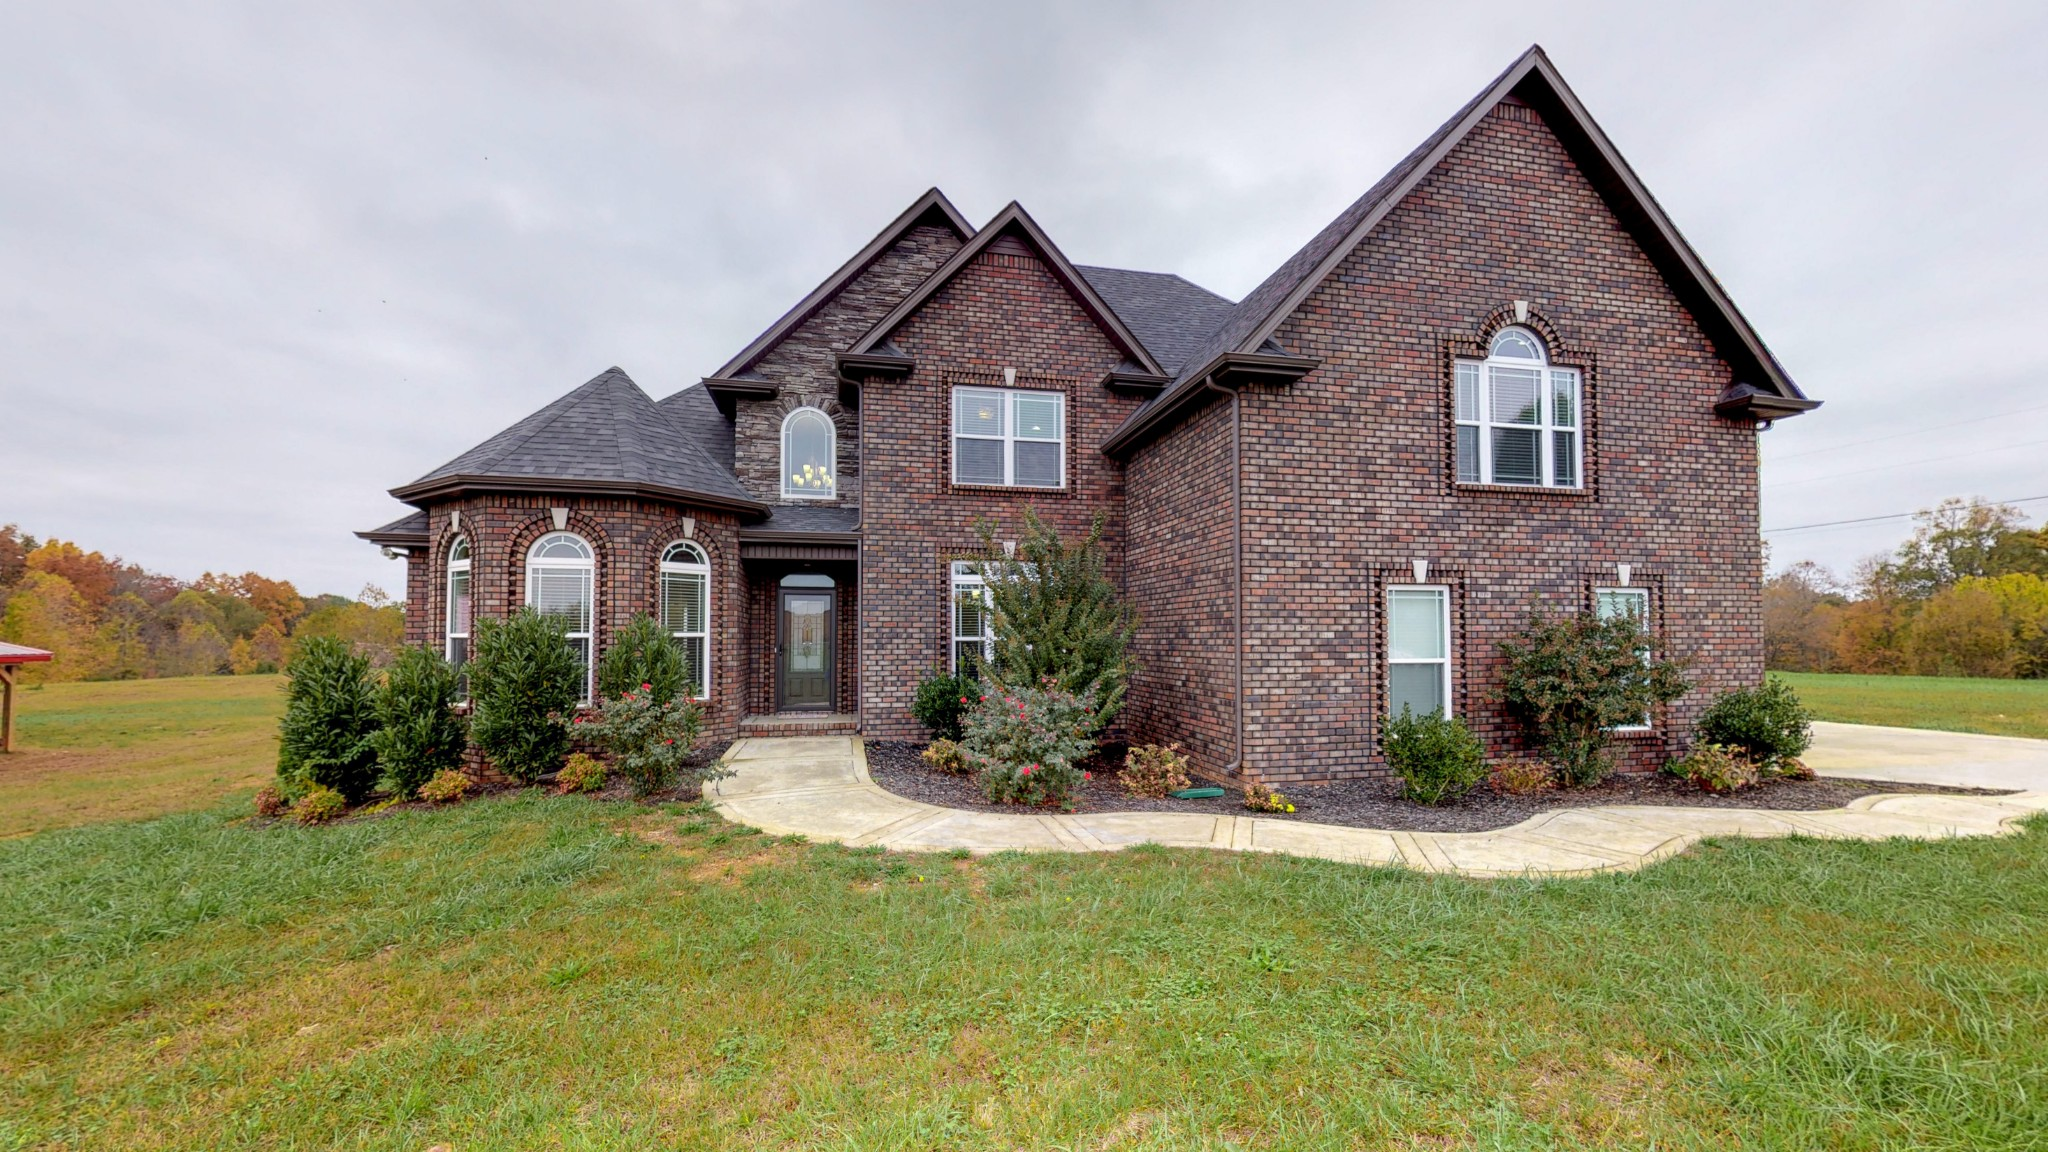 4557 Thomasville Rd, Chapmansboro, TN 37035 - Chapmansboro, TN real estate listing